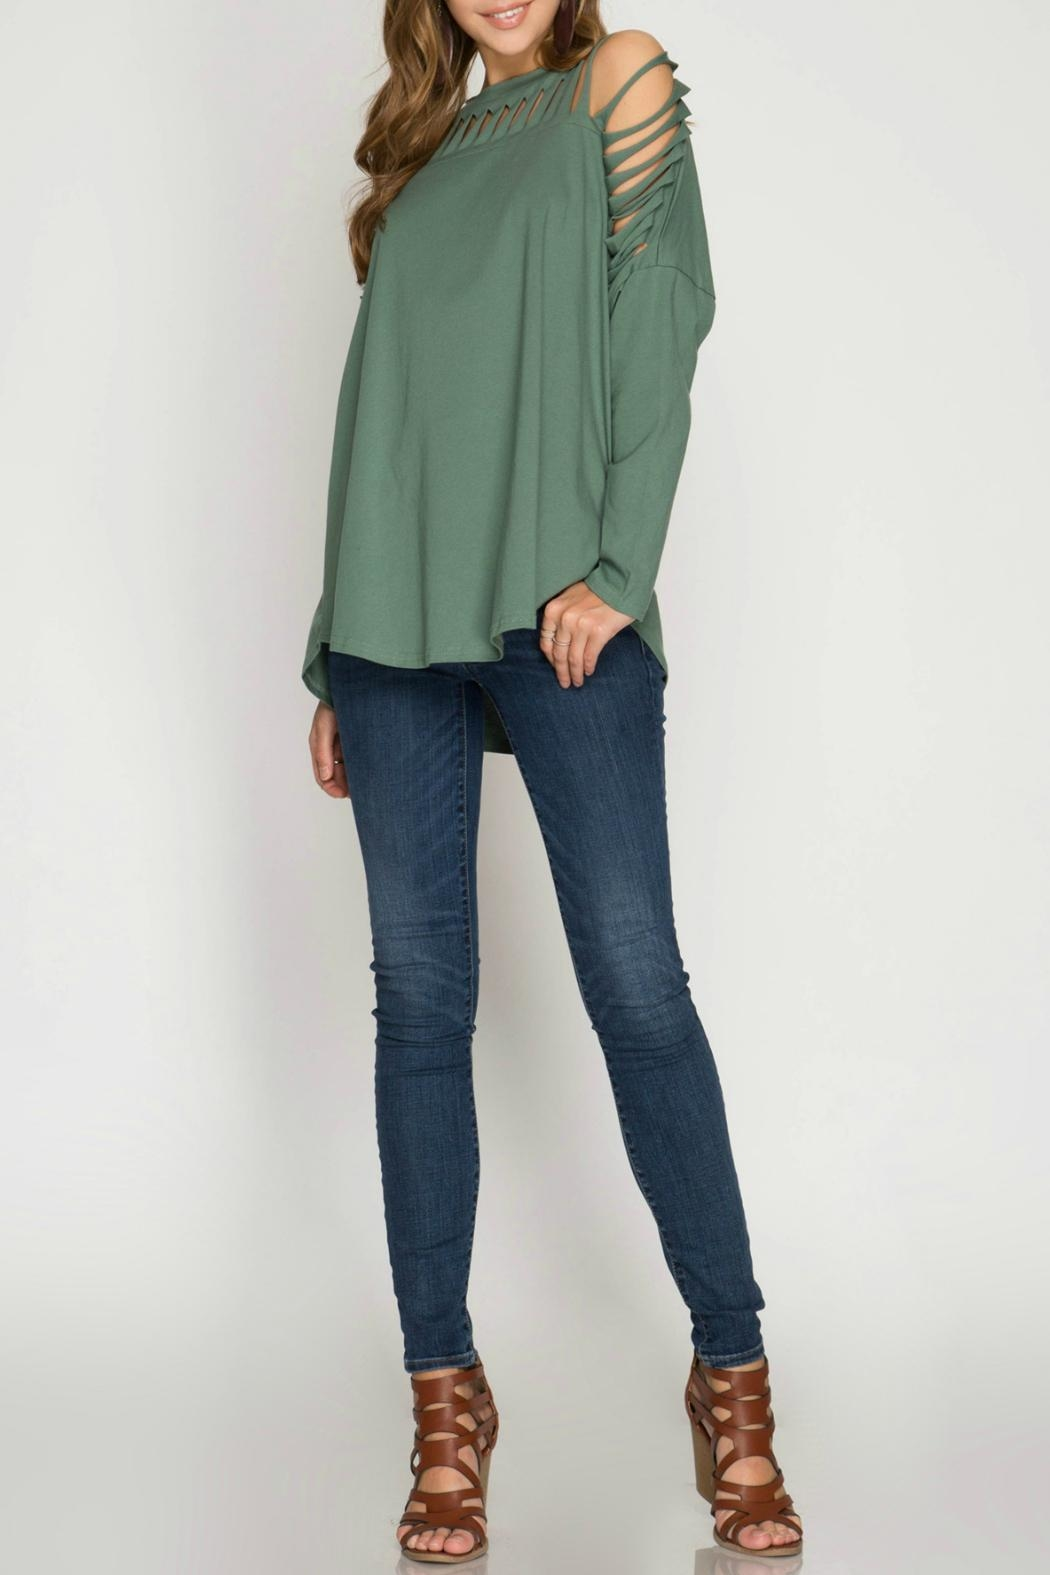 She + Sky Cactus Green Knit-Top - Side Cropped Image